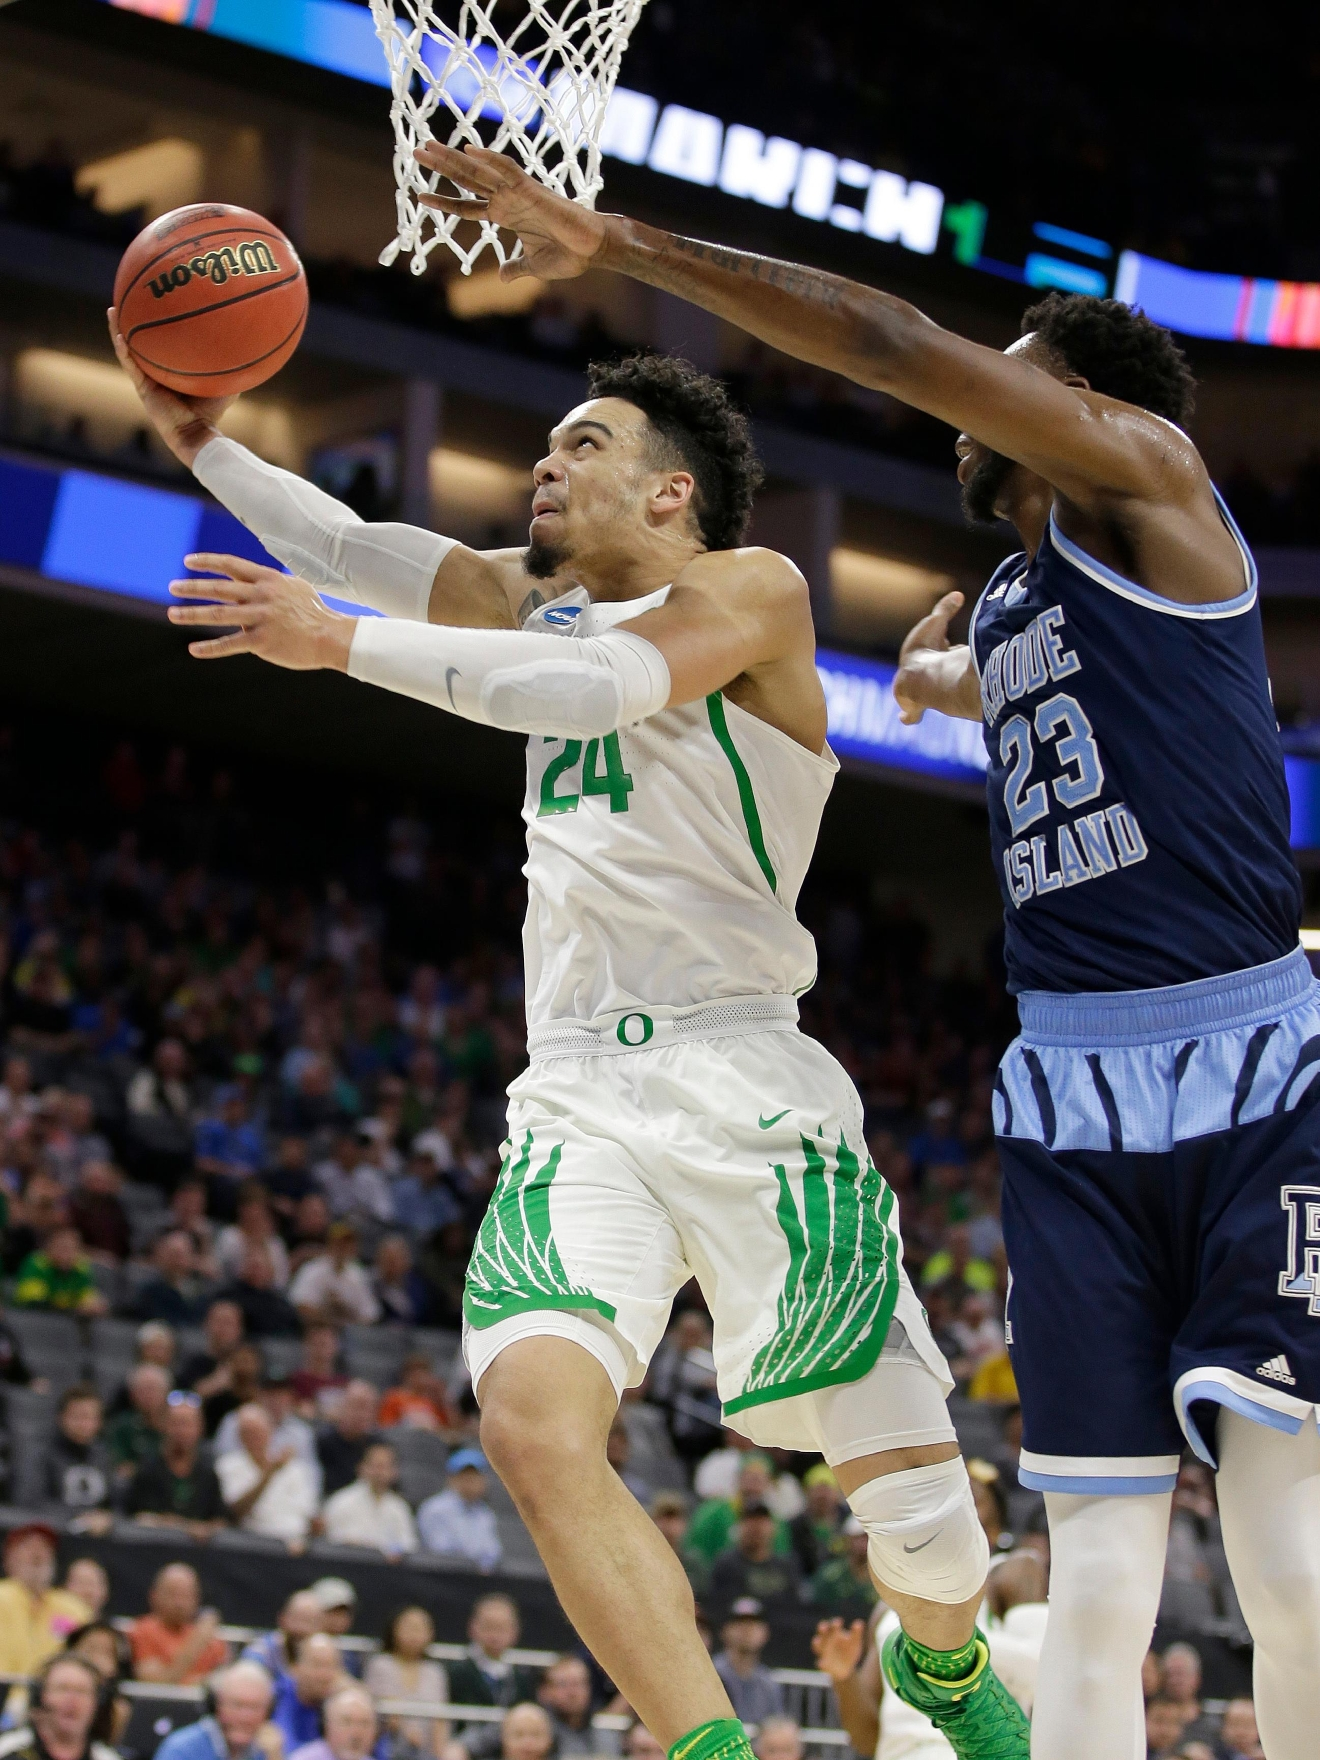 Oregon Ducks, Dillon Brooks, left, goes to the basket against Rhode Island forward Kuran Iverson during the first half of a second-round game of the NCAA men's college basketball tournament in Sacramento, Calif., Sunday, March 19, 2017. (AP Photo/Rich Pedroncelli )